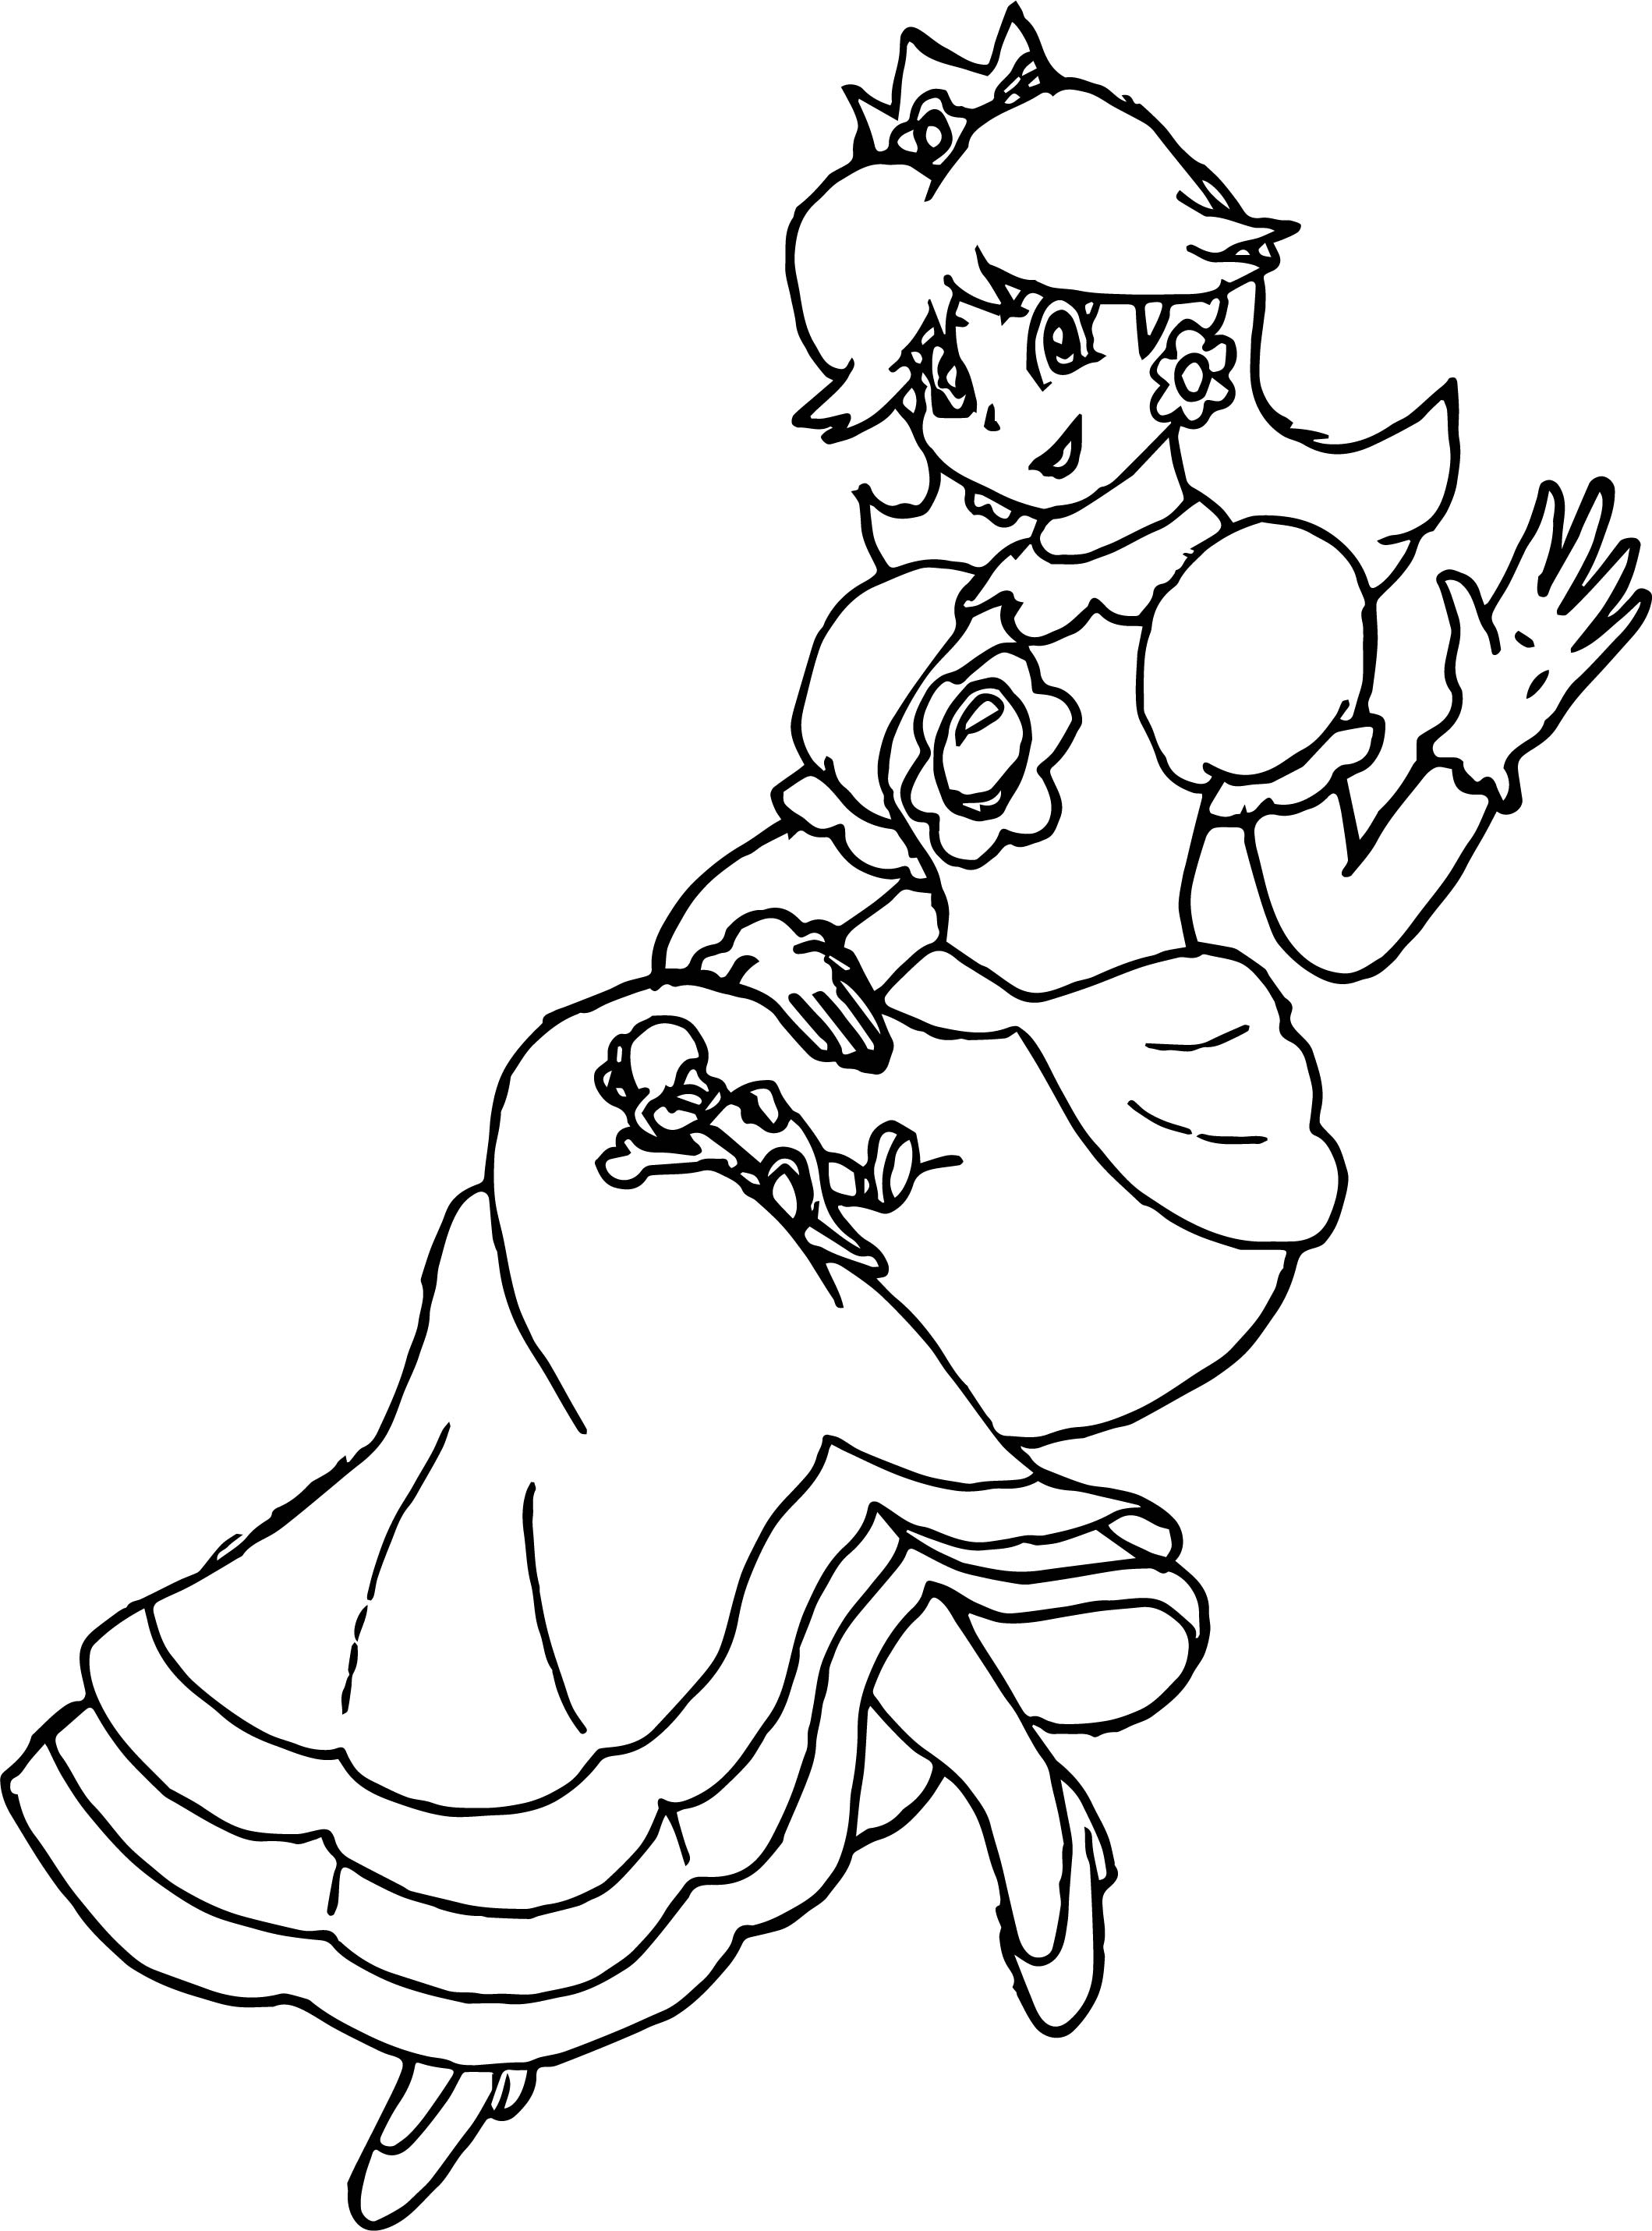 Adult Daisy Coloring Page